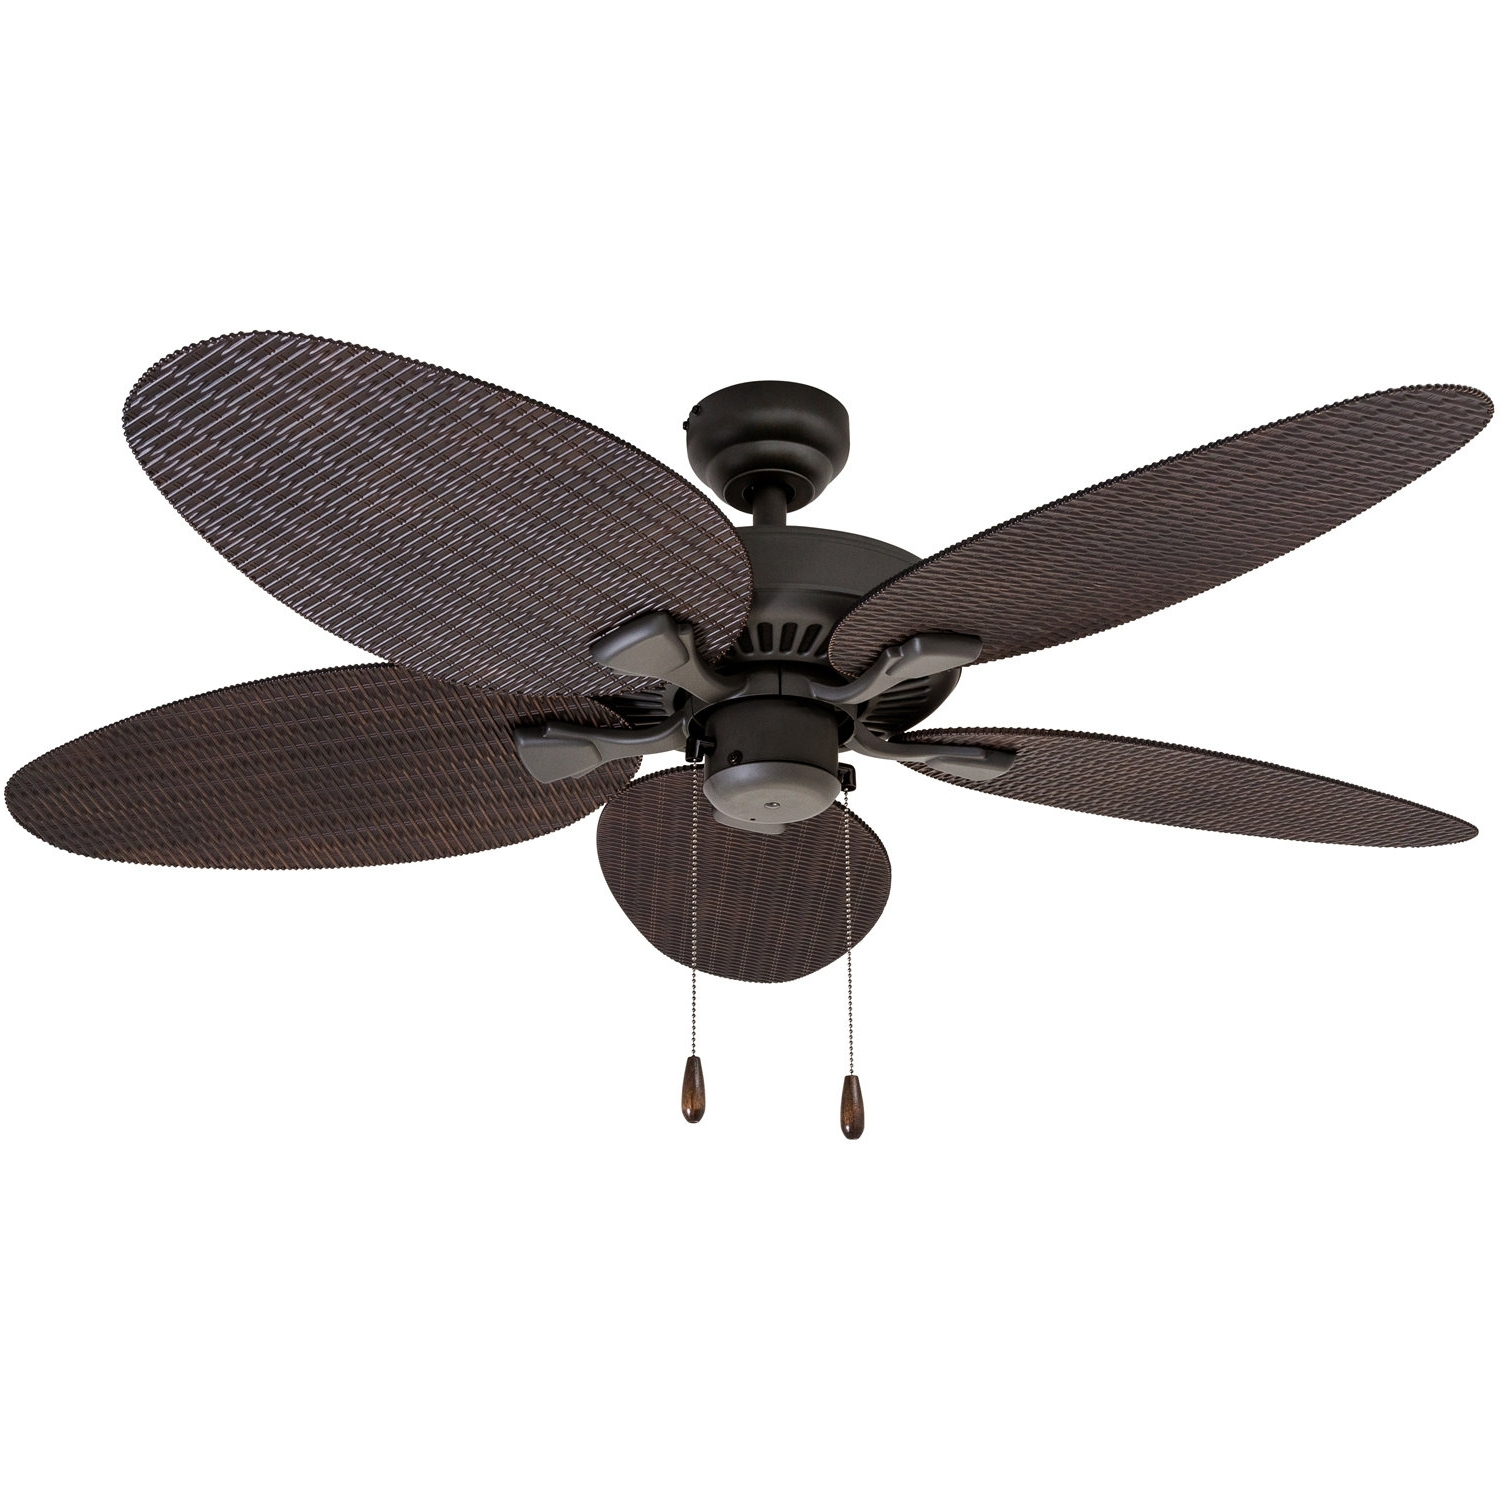 Wayfair Pertaining To Wayfair Outdoor Ceiling Fans (View 18 of 20)